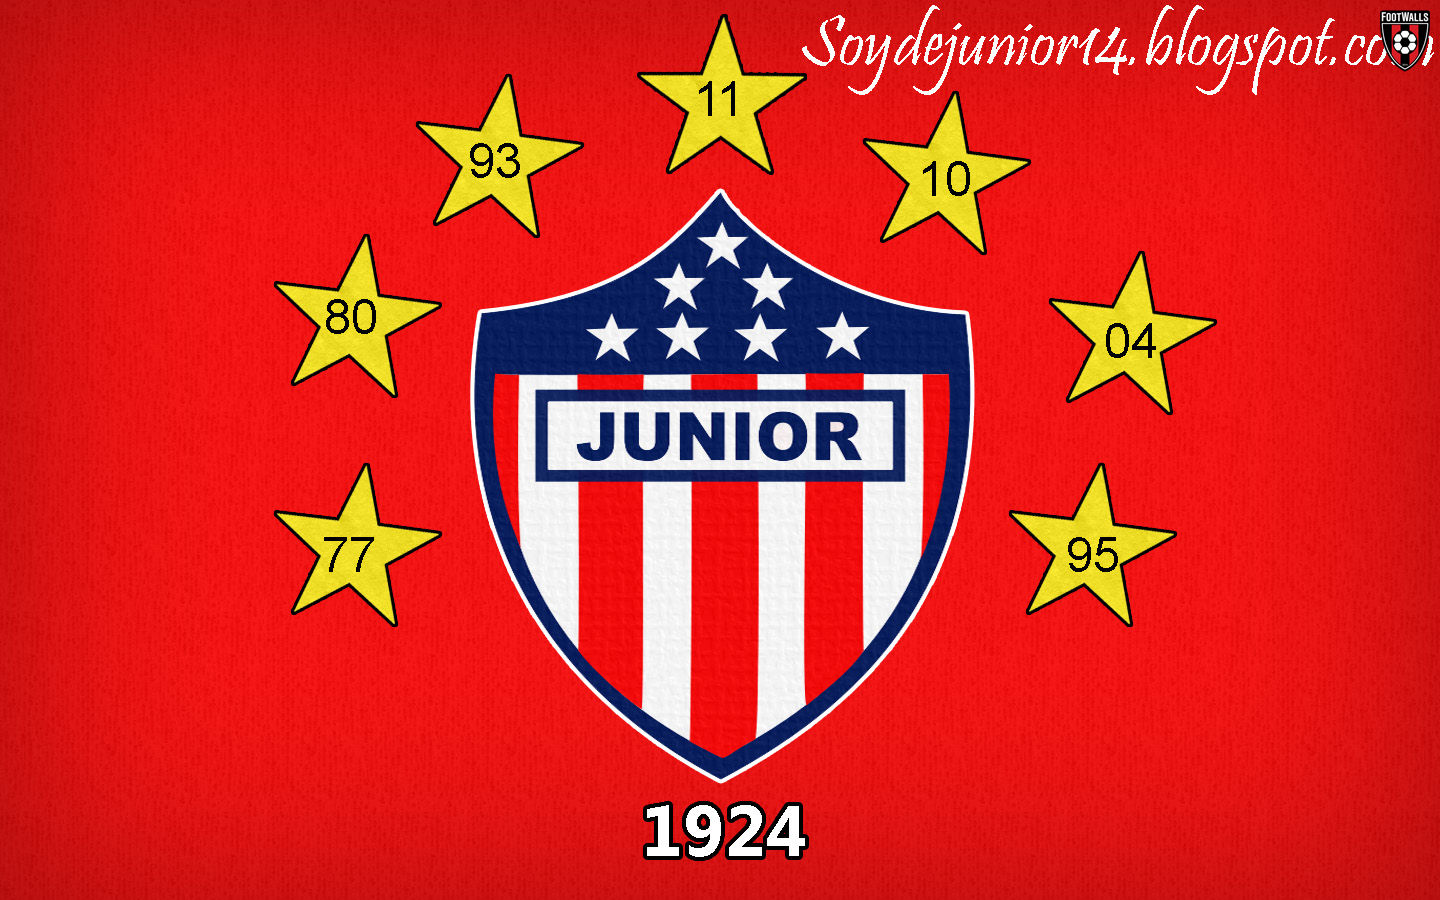 Junior Wallpaper